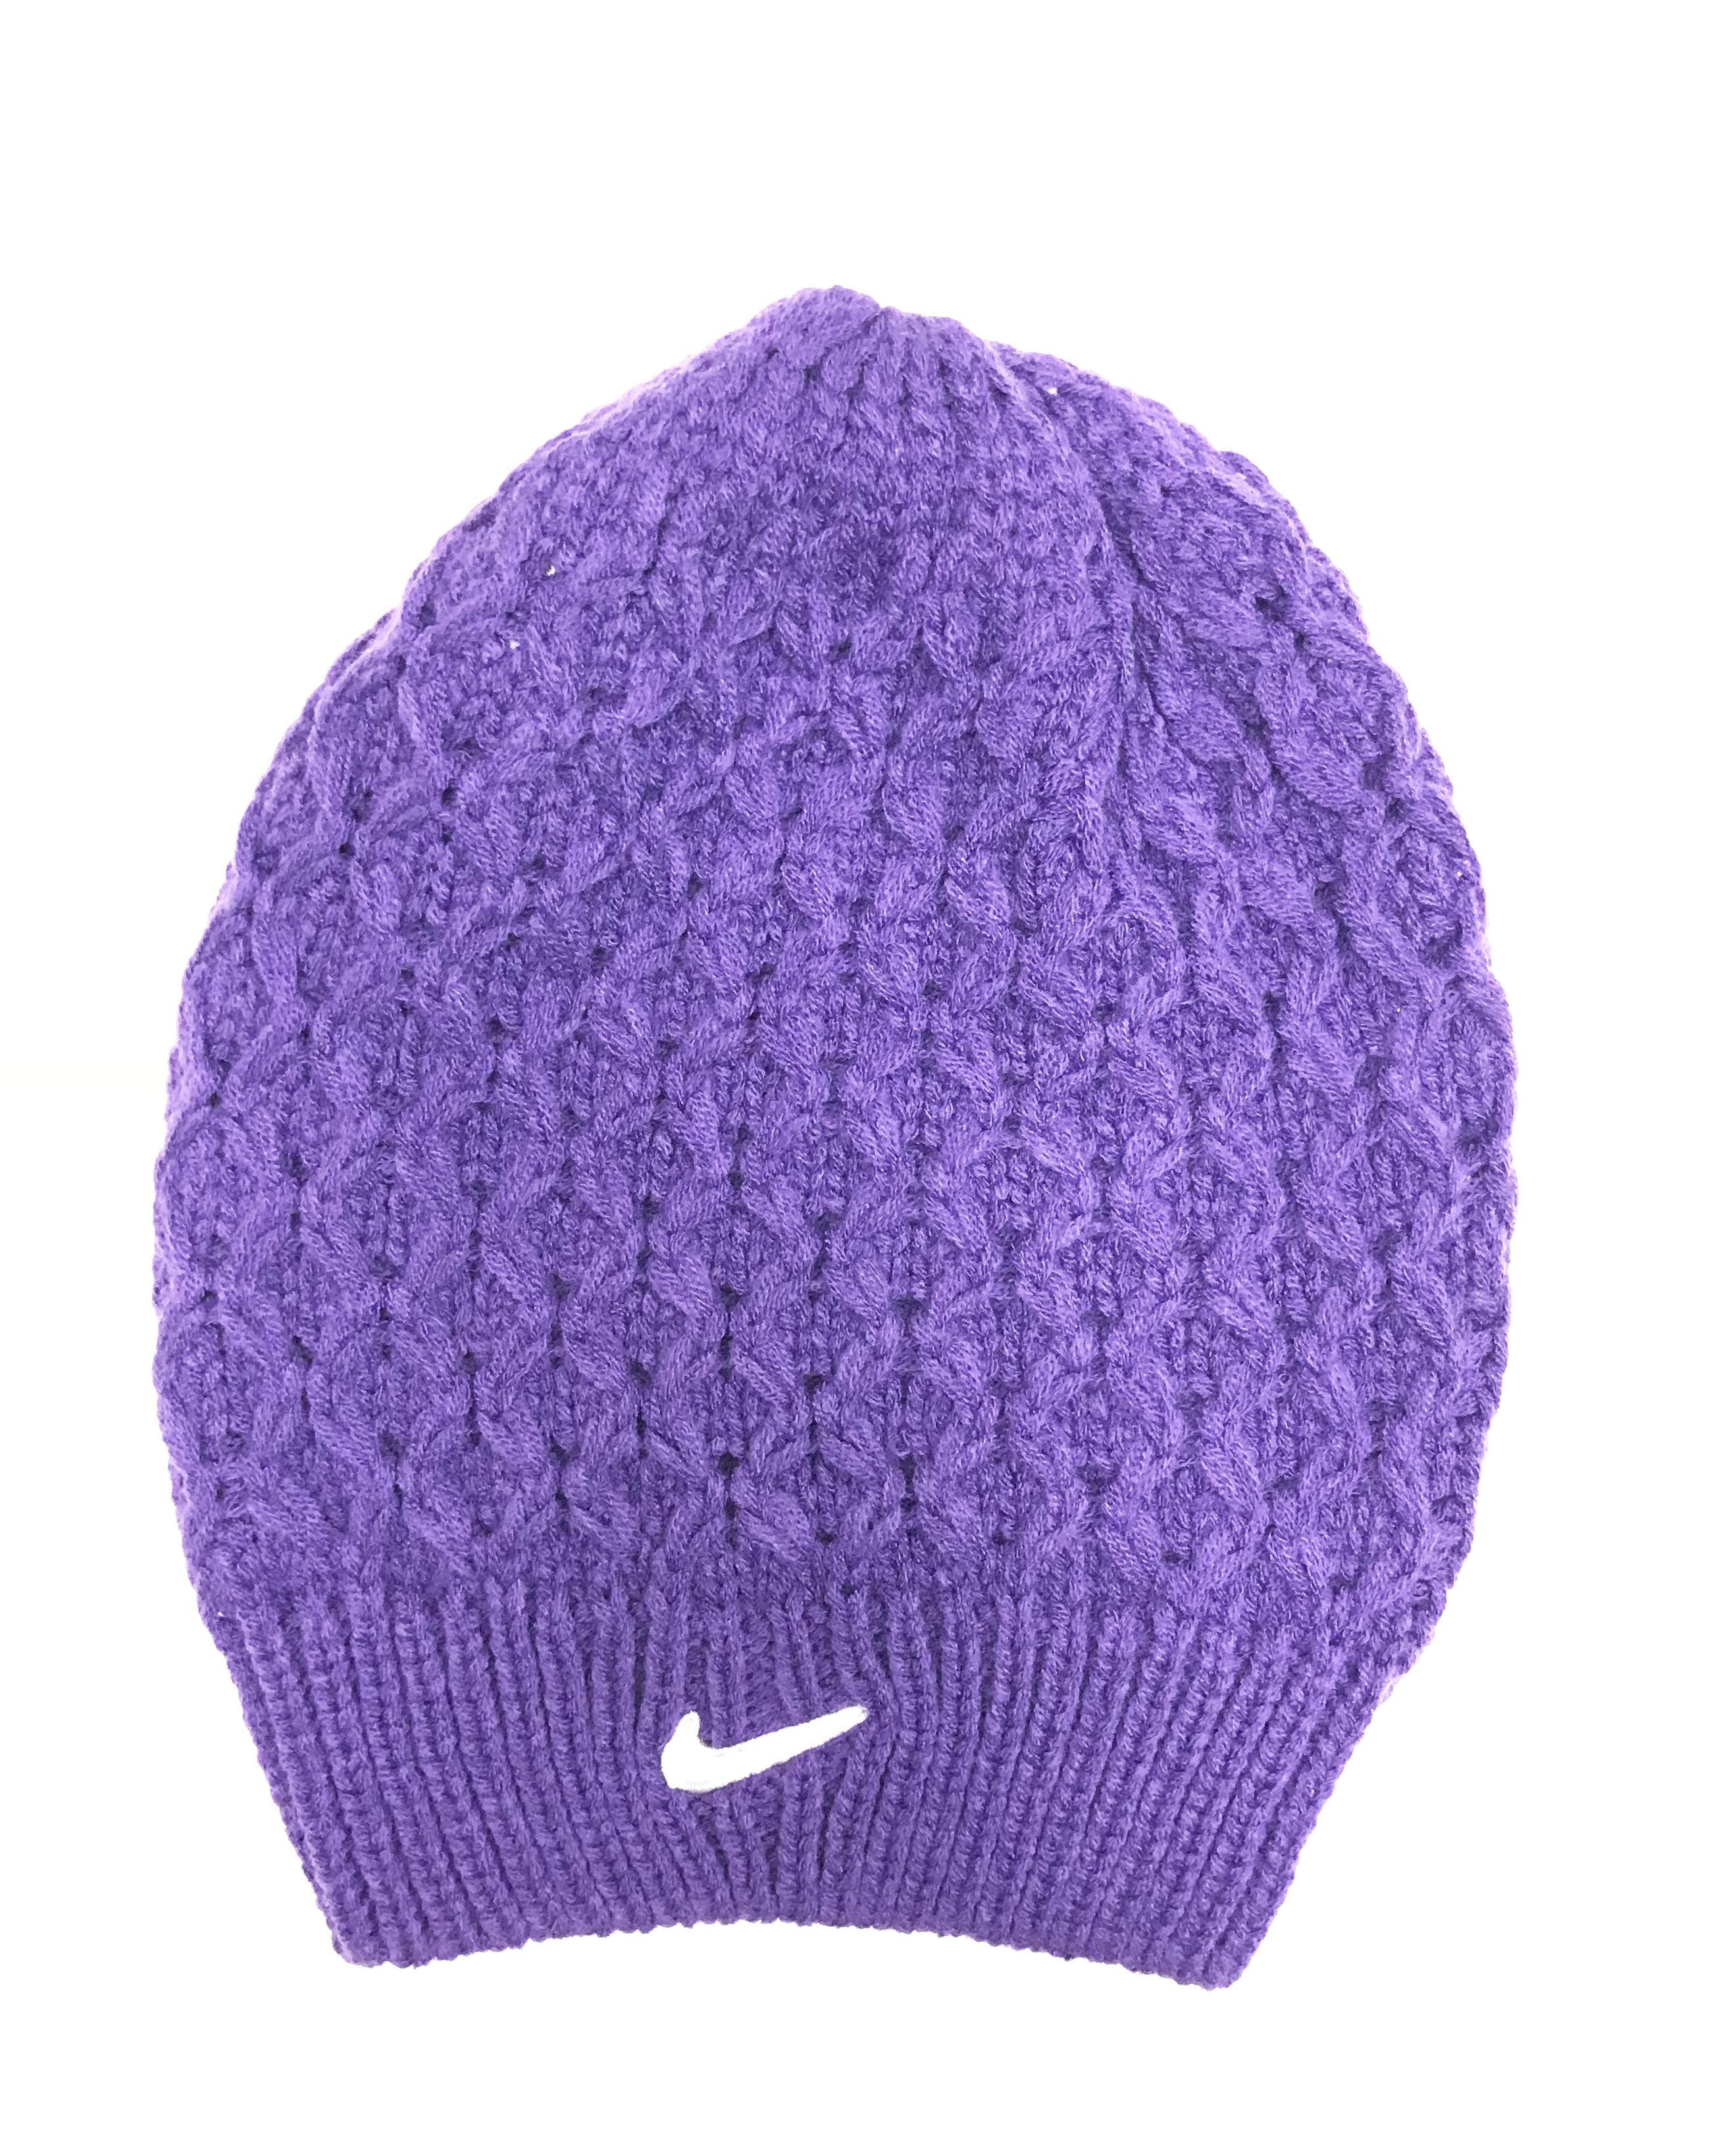 29b62e5b0f4 Nike women s slouchy beanie- purple with swoosh and athletic shield.  ( 29.99)